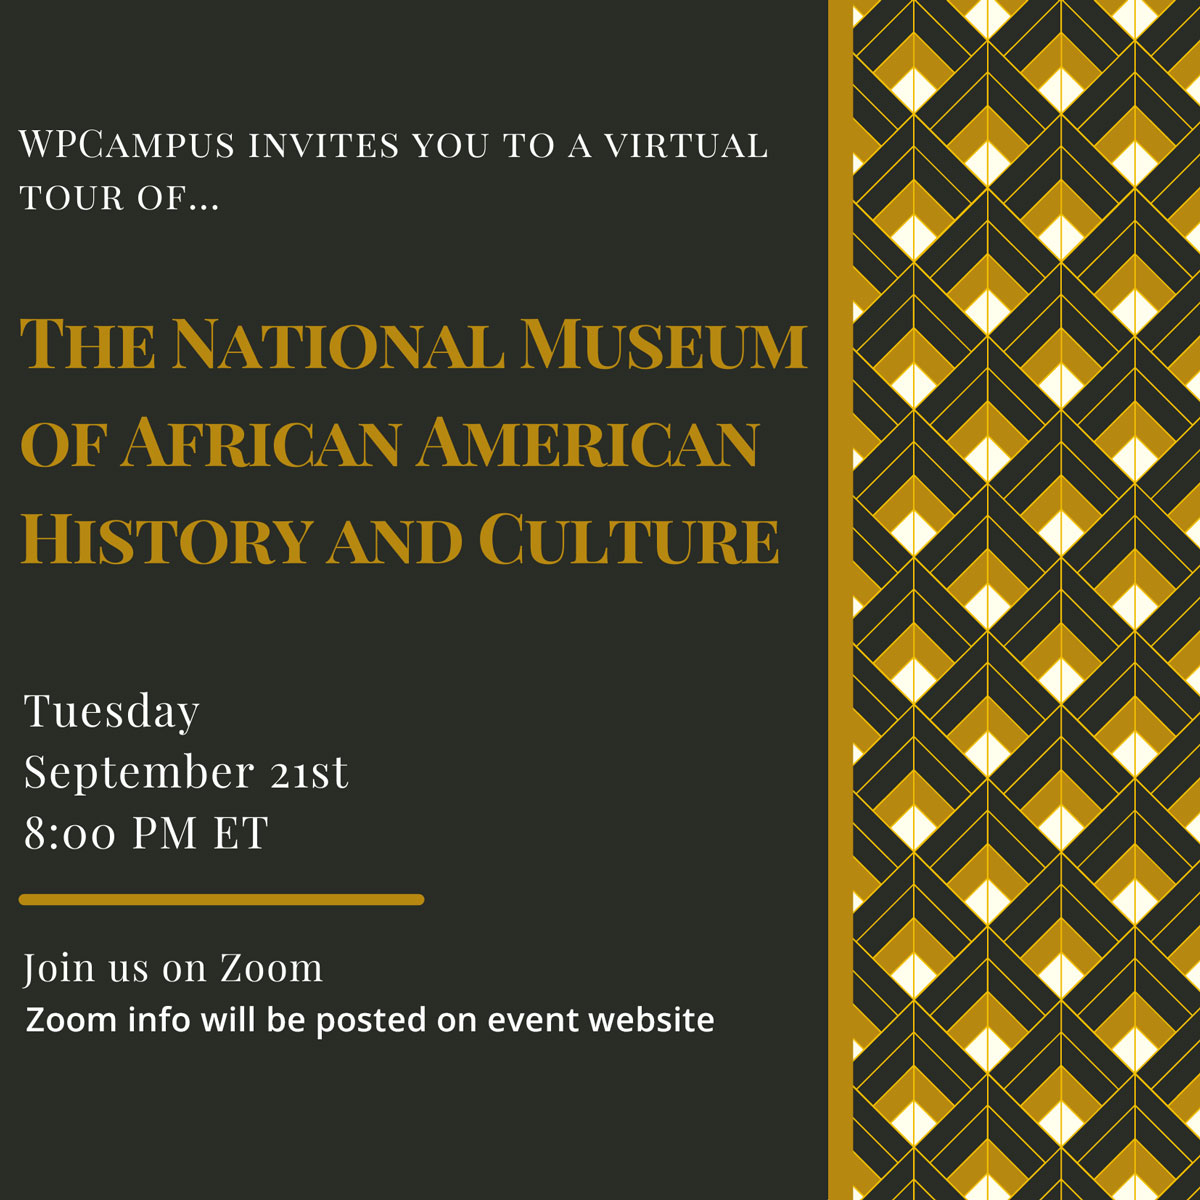 WPCampus invites you to a virtual tour of The National Museum of African American History & Culture on Tuesday September 21 at 8 pm Eastern. The Zoom info will be posted on the event website.